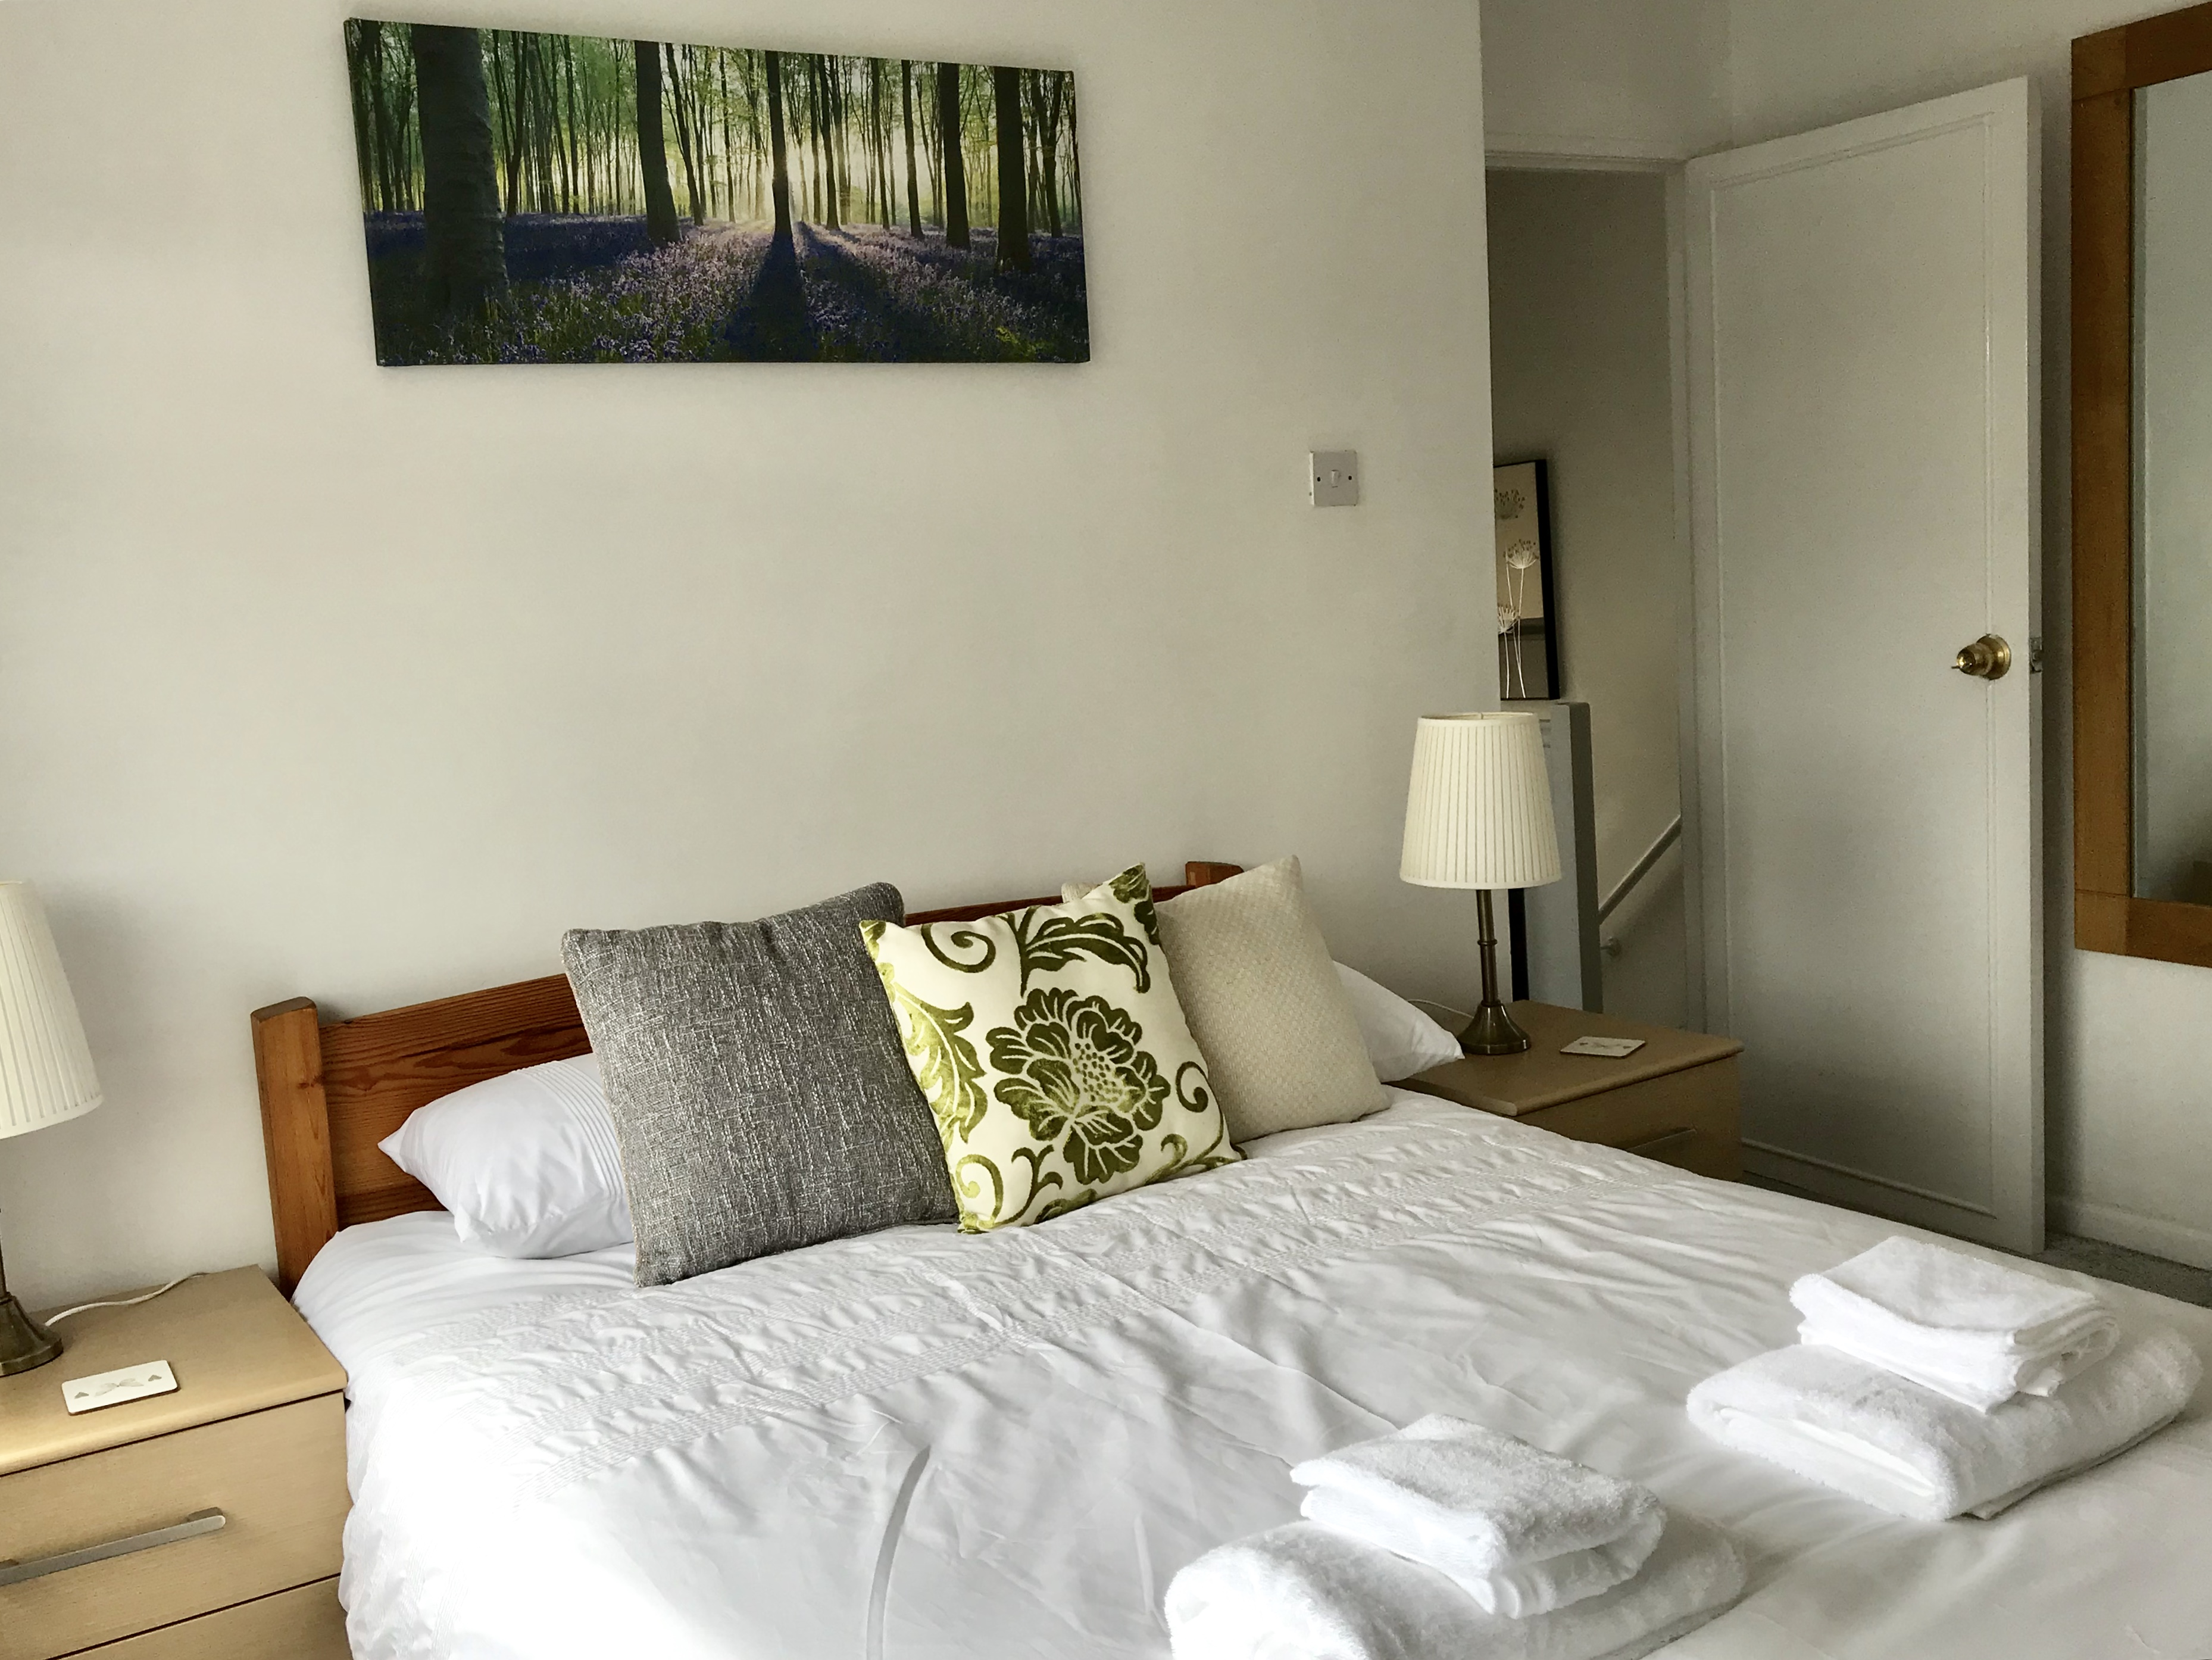 Apartment The Woodfarm Lodge - 3 Bedroom House with parking - Oxford photo 20195024